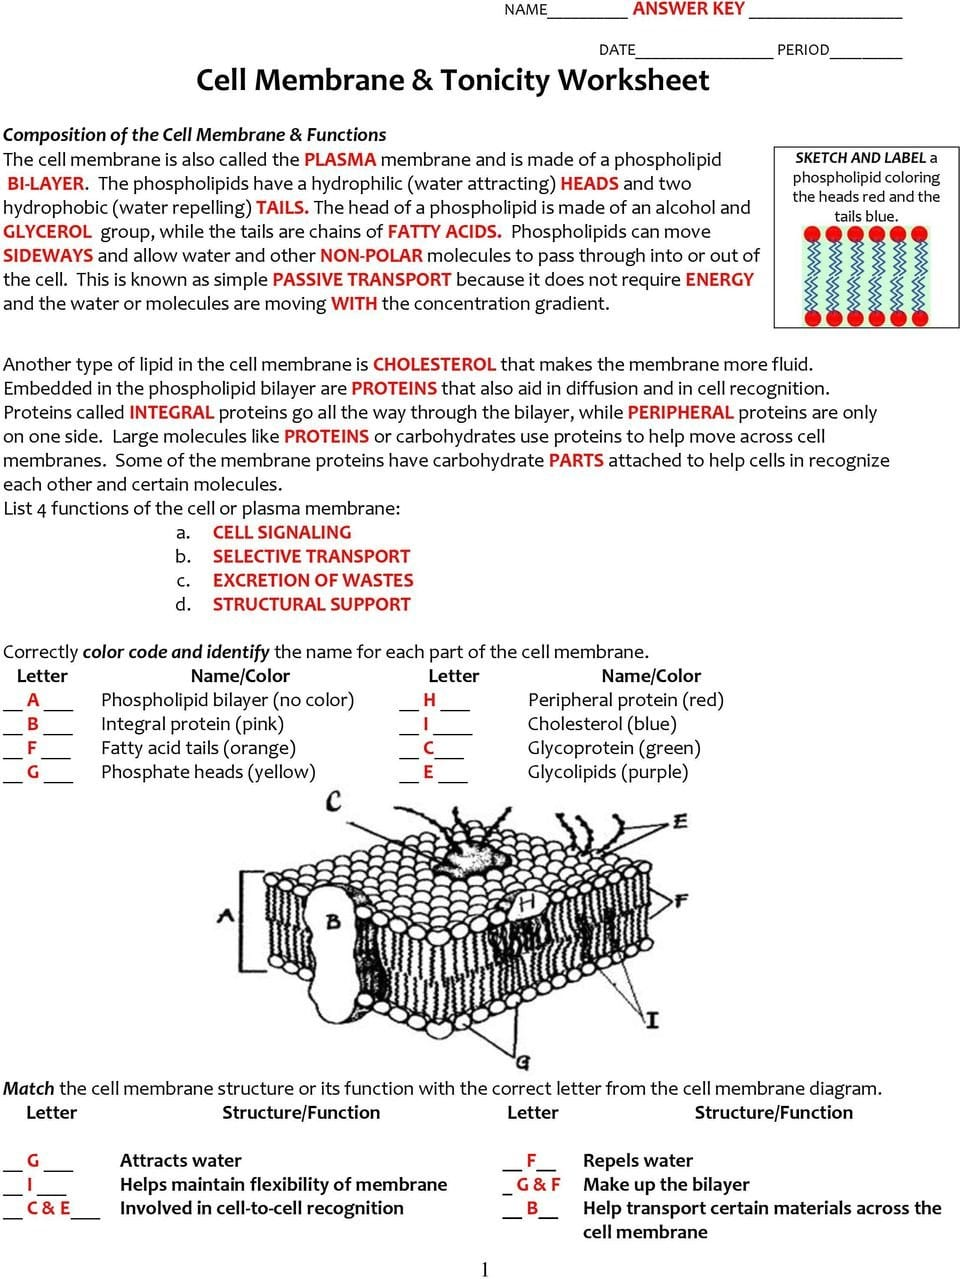 Cell Membrane  Tonicity Worksheet  Pdf With Regard To Cell Membrane Amp Tonicity Worksheet